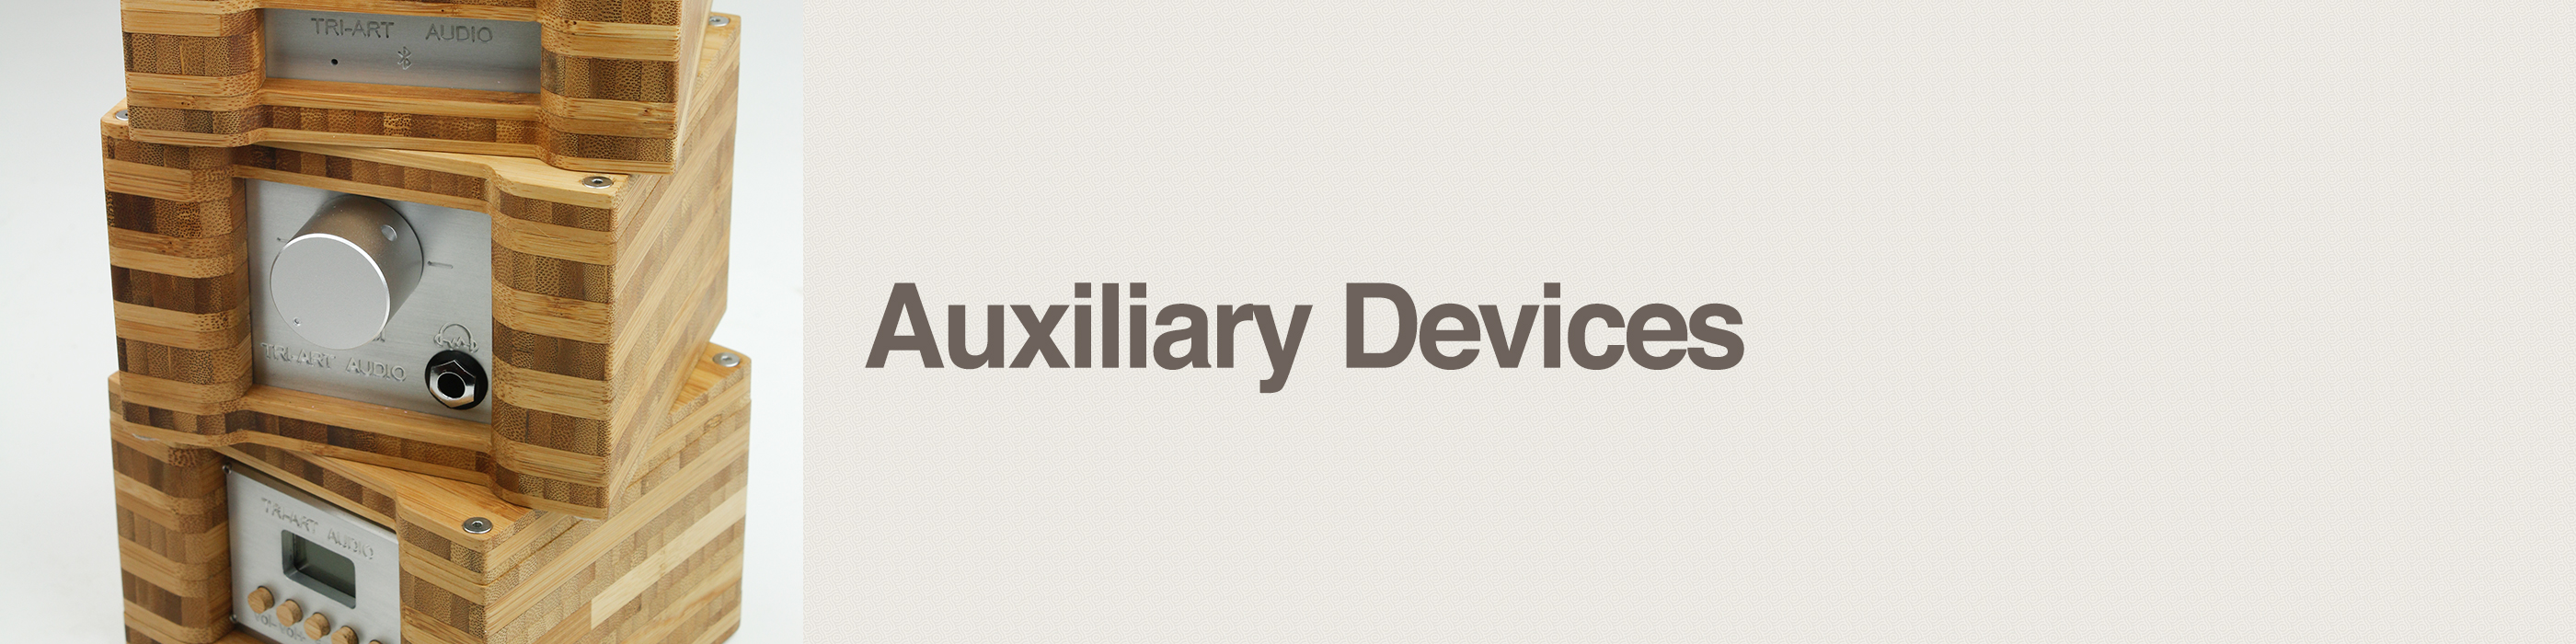 auxiliary devices header